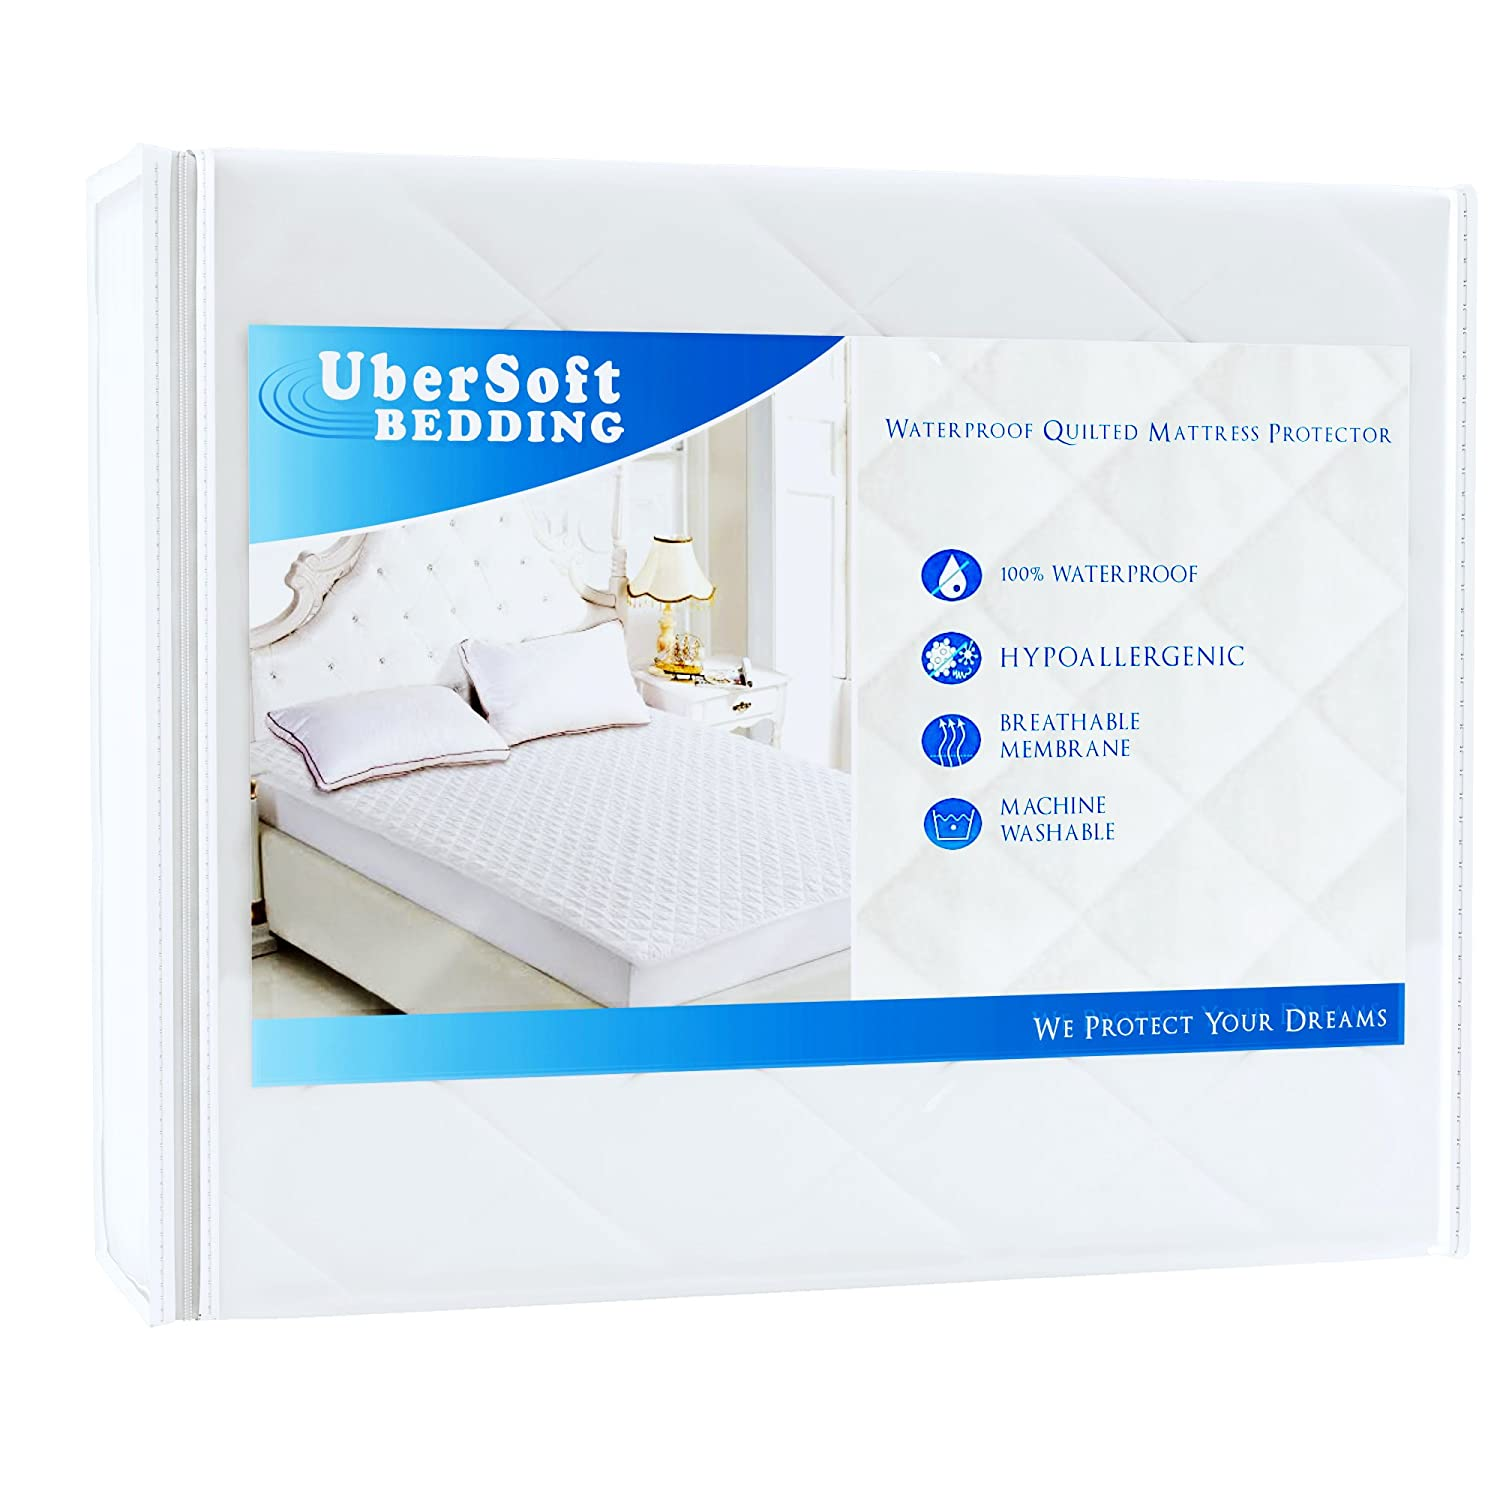 UberSoft Bedding Mattress Protector Pad for Queen Bed: Cover is Waterproof and Hypoallergenic for Accidental Spills, Bed Wetting and Enuresis with Deep Pockets (Queen) 9084322